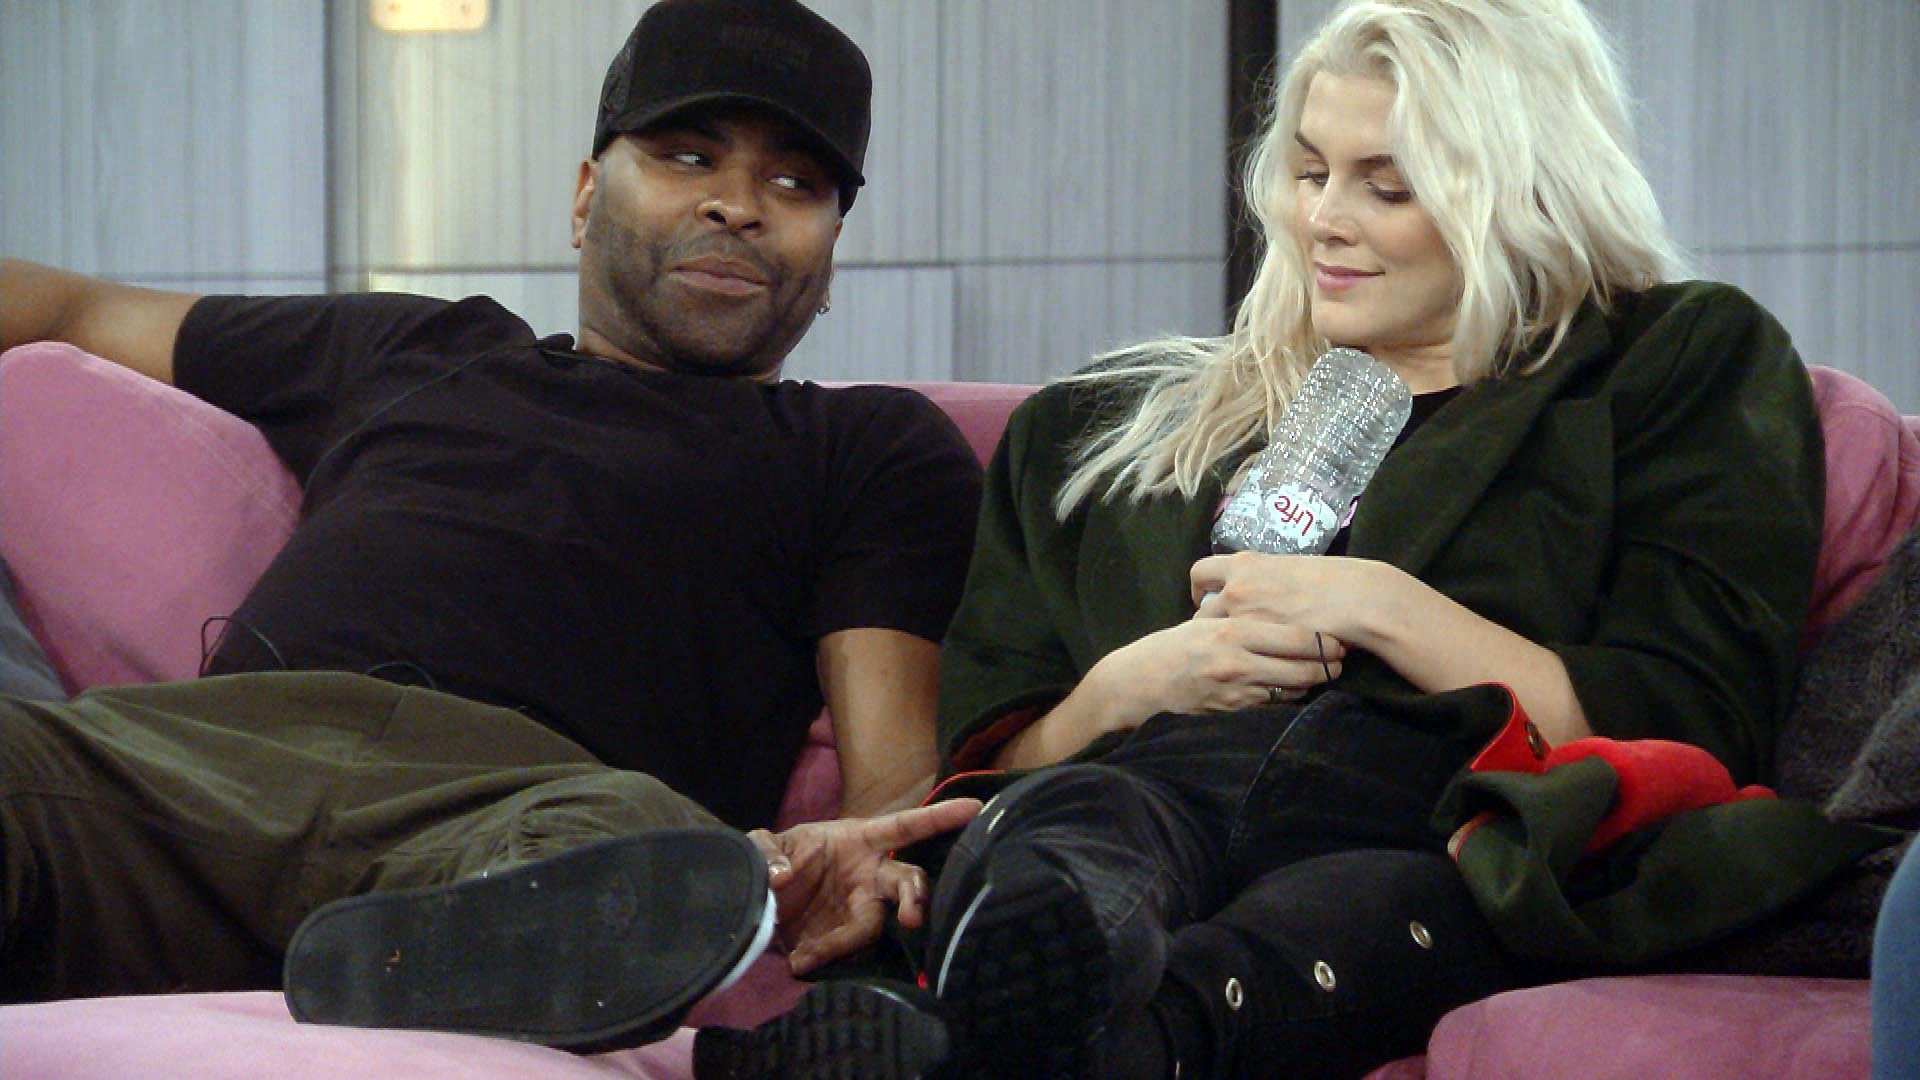 Ginuwine Refuses to Kiss Transwoman and The Internet Goes Bonkers